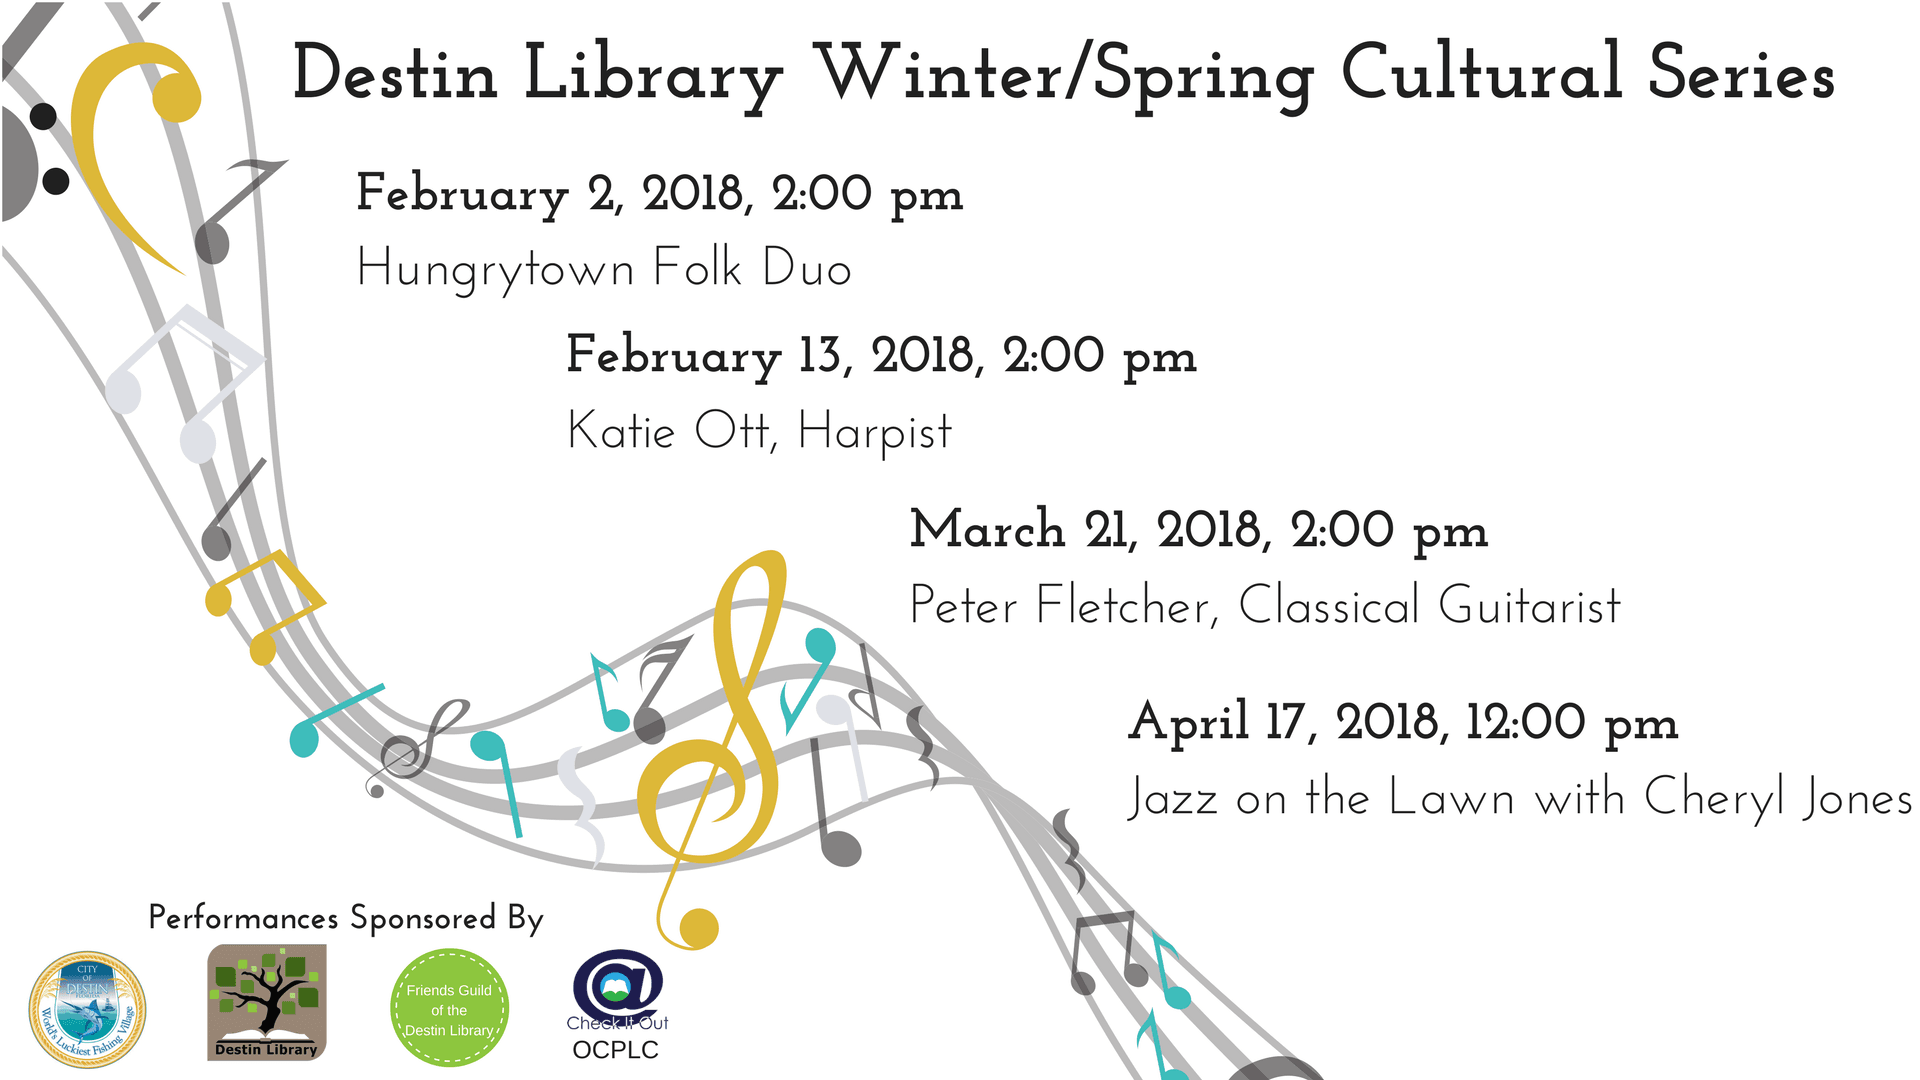 Events in the Library's spring cultural programs series.